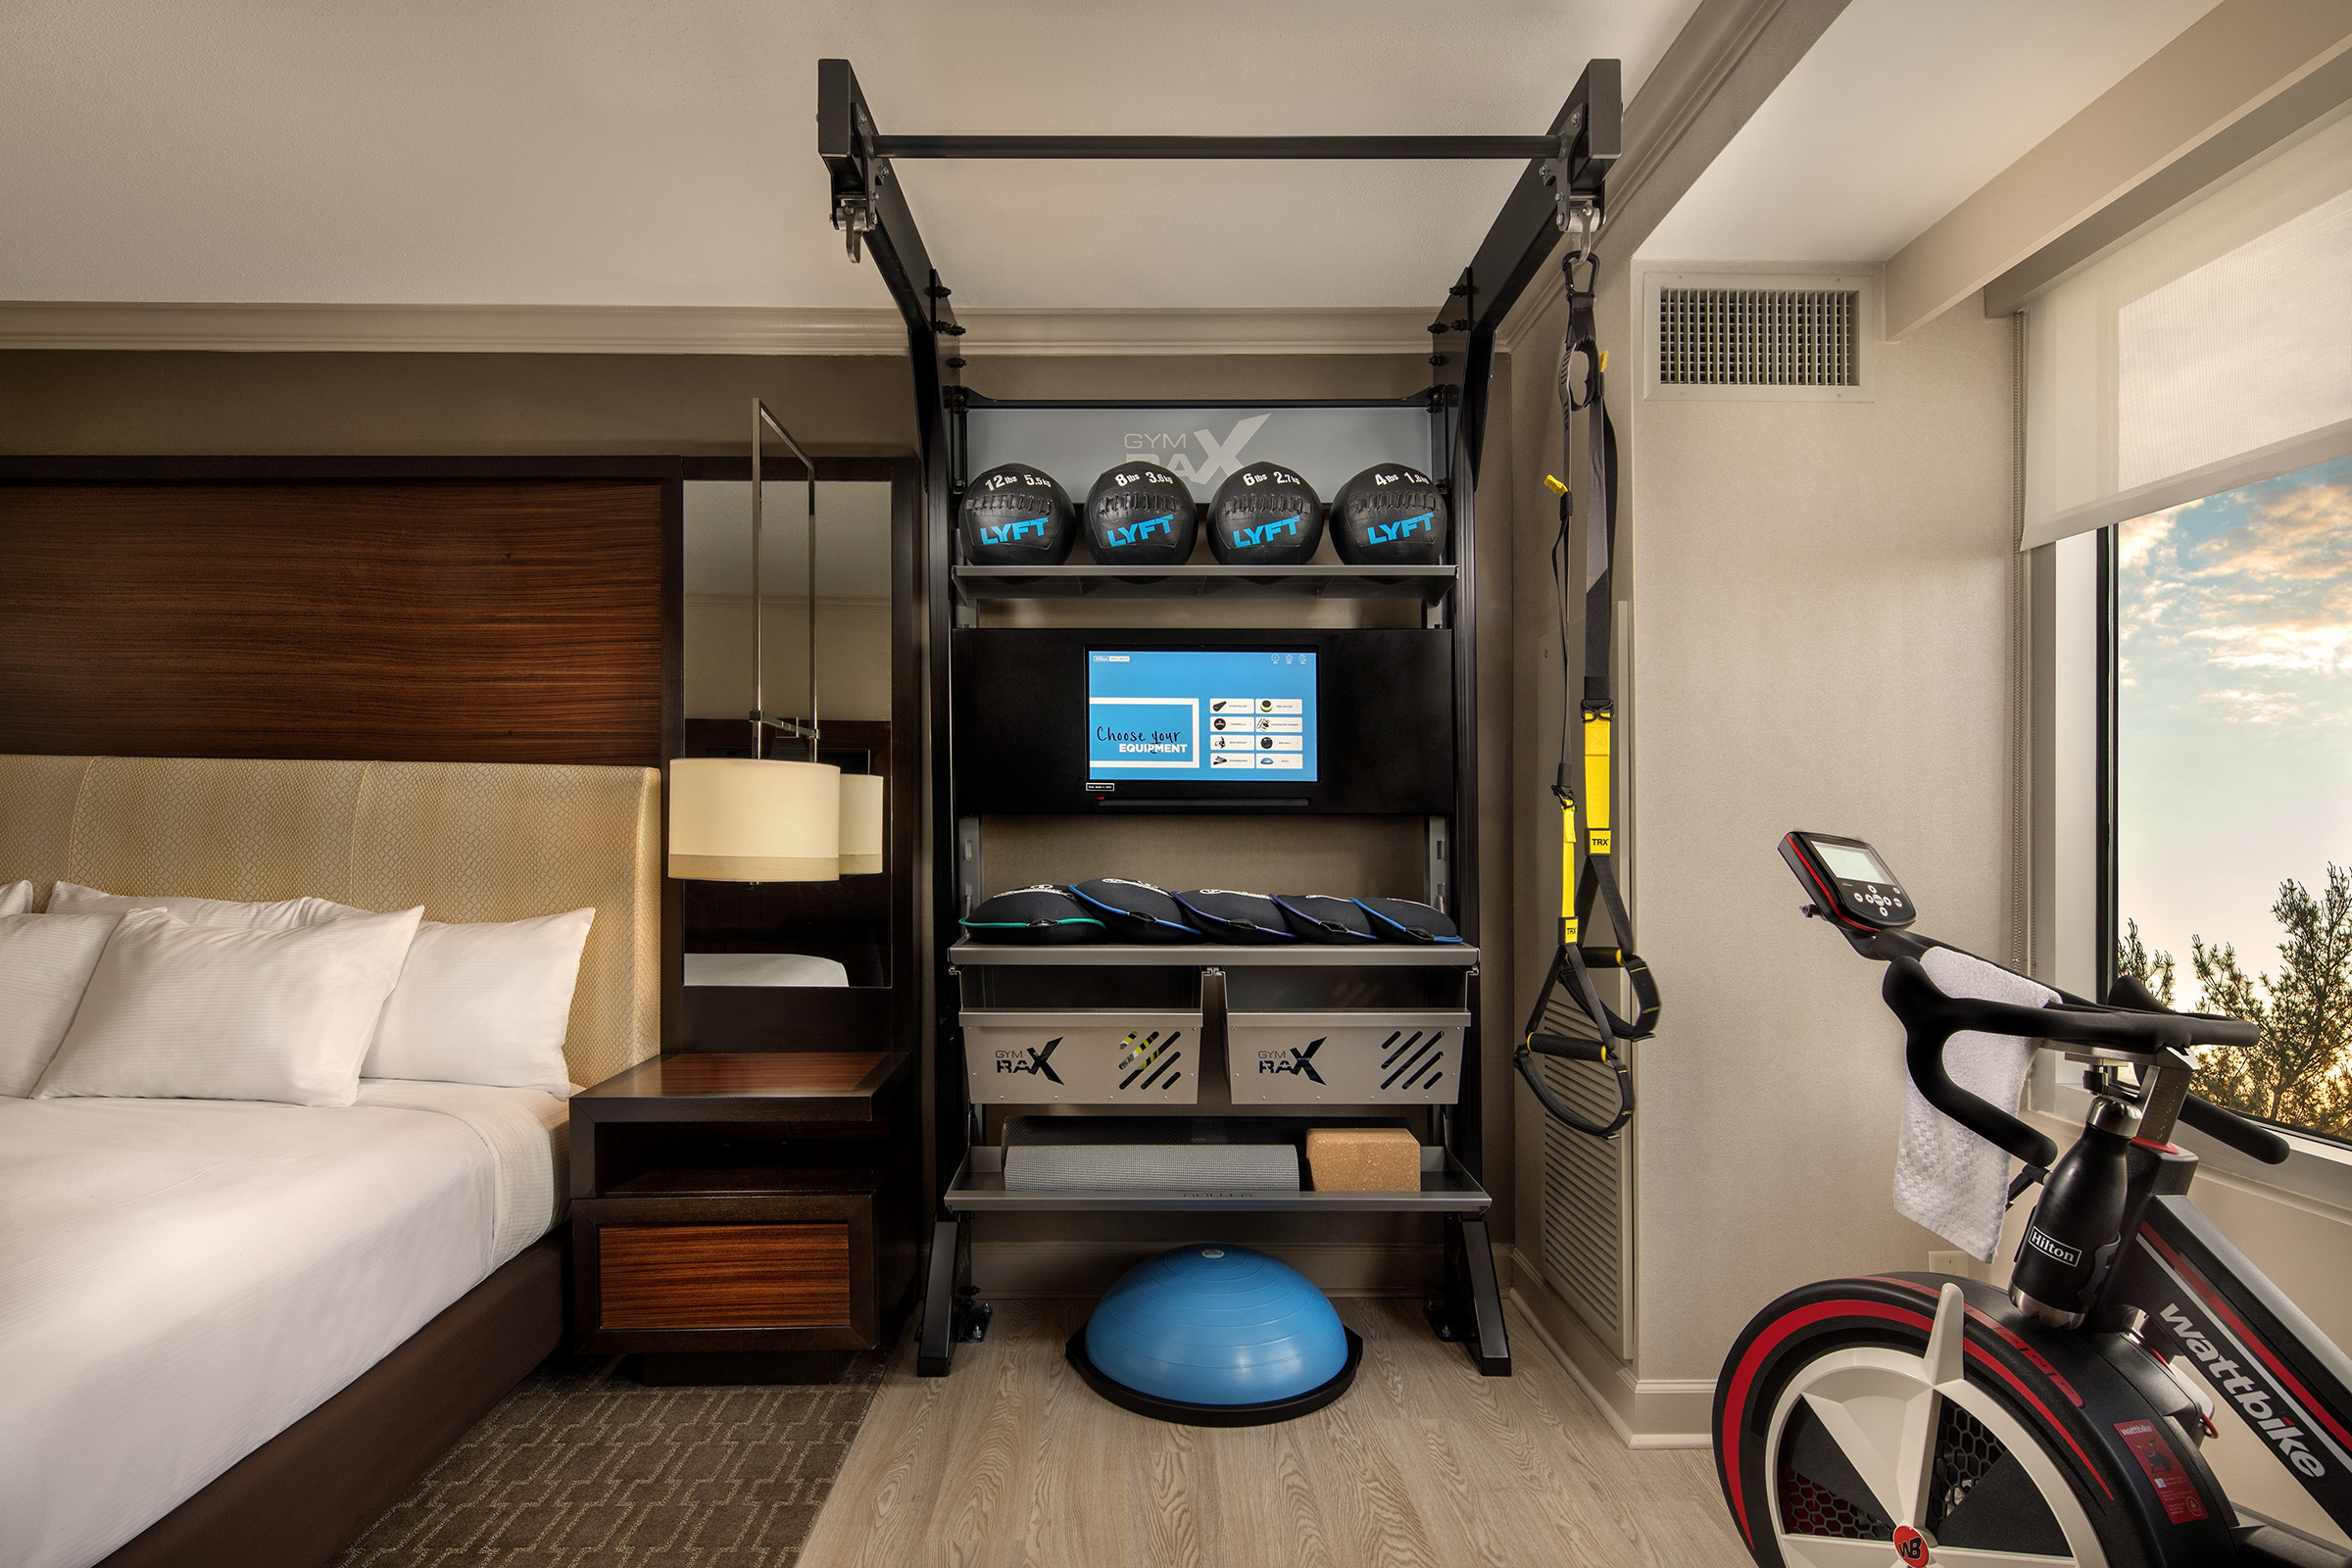 Hilton Five Feet to Fitness hotel room gym